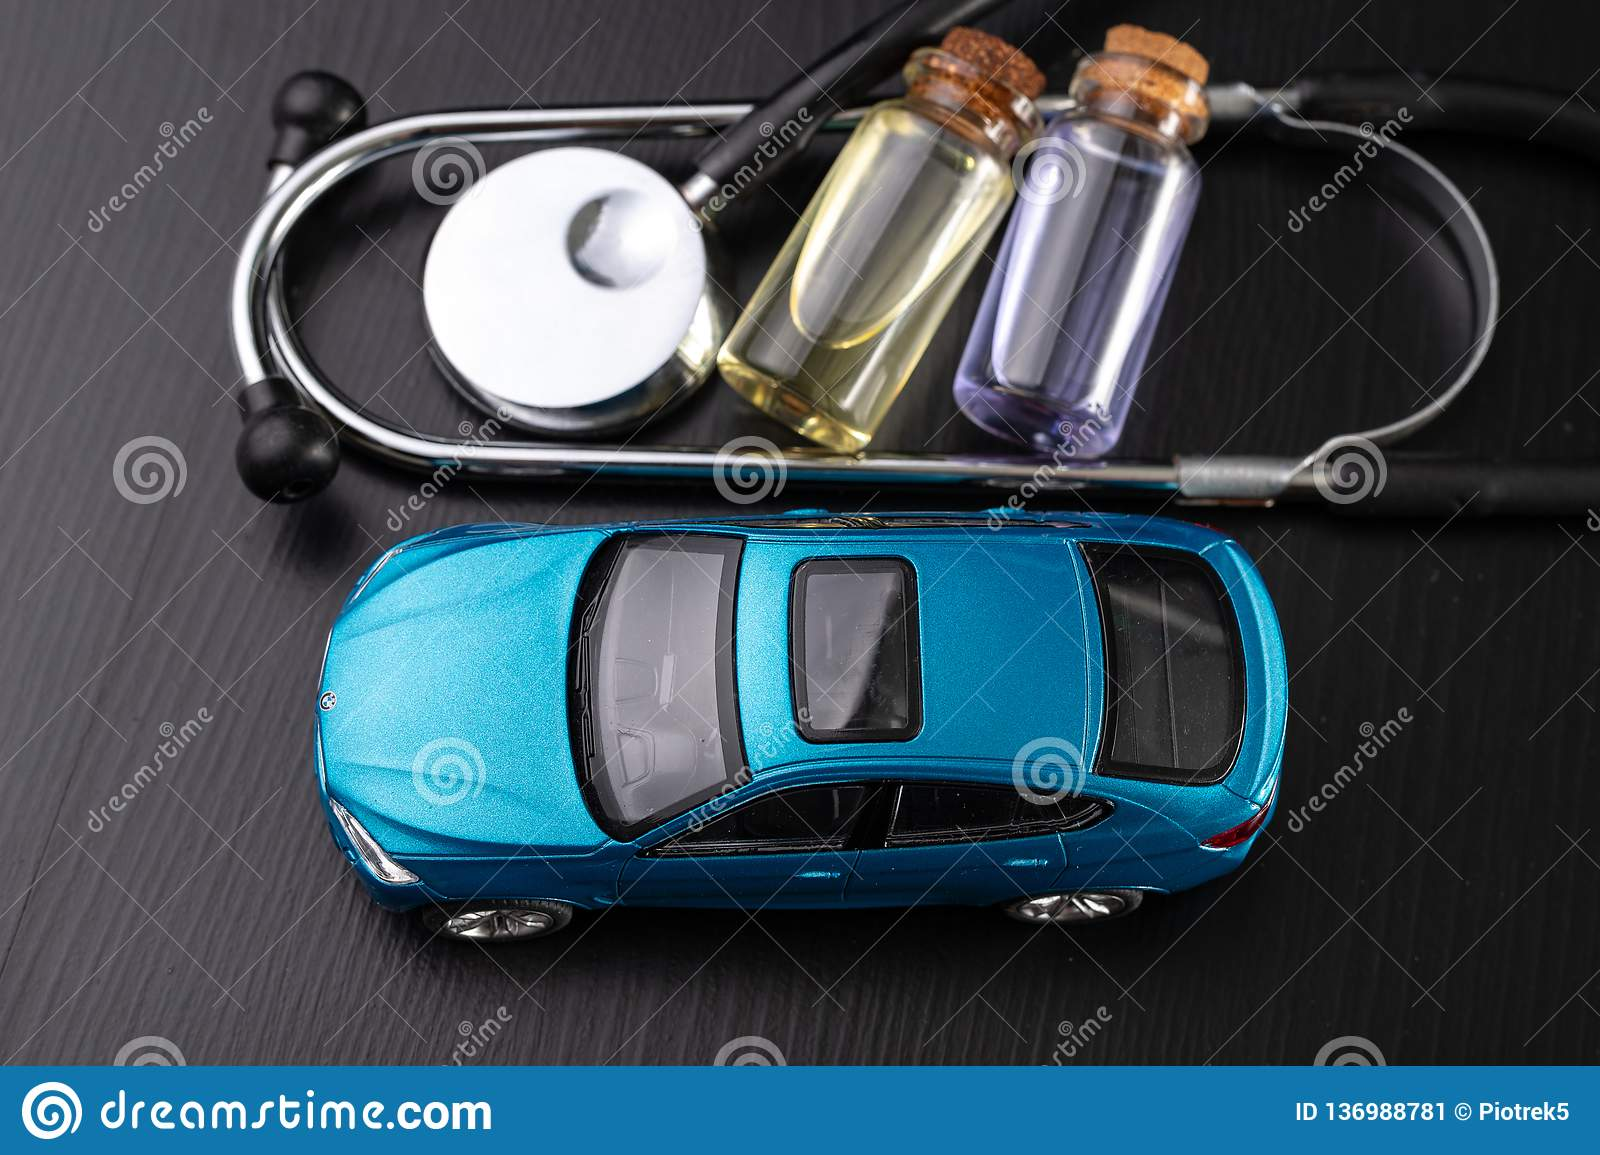 Diagnosis of a passenger car. Repair and troubleshooting in car workshops